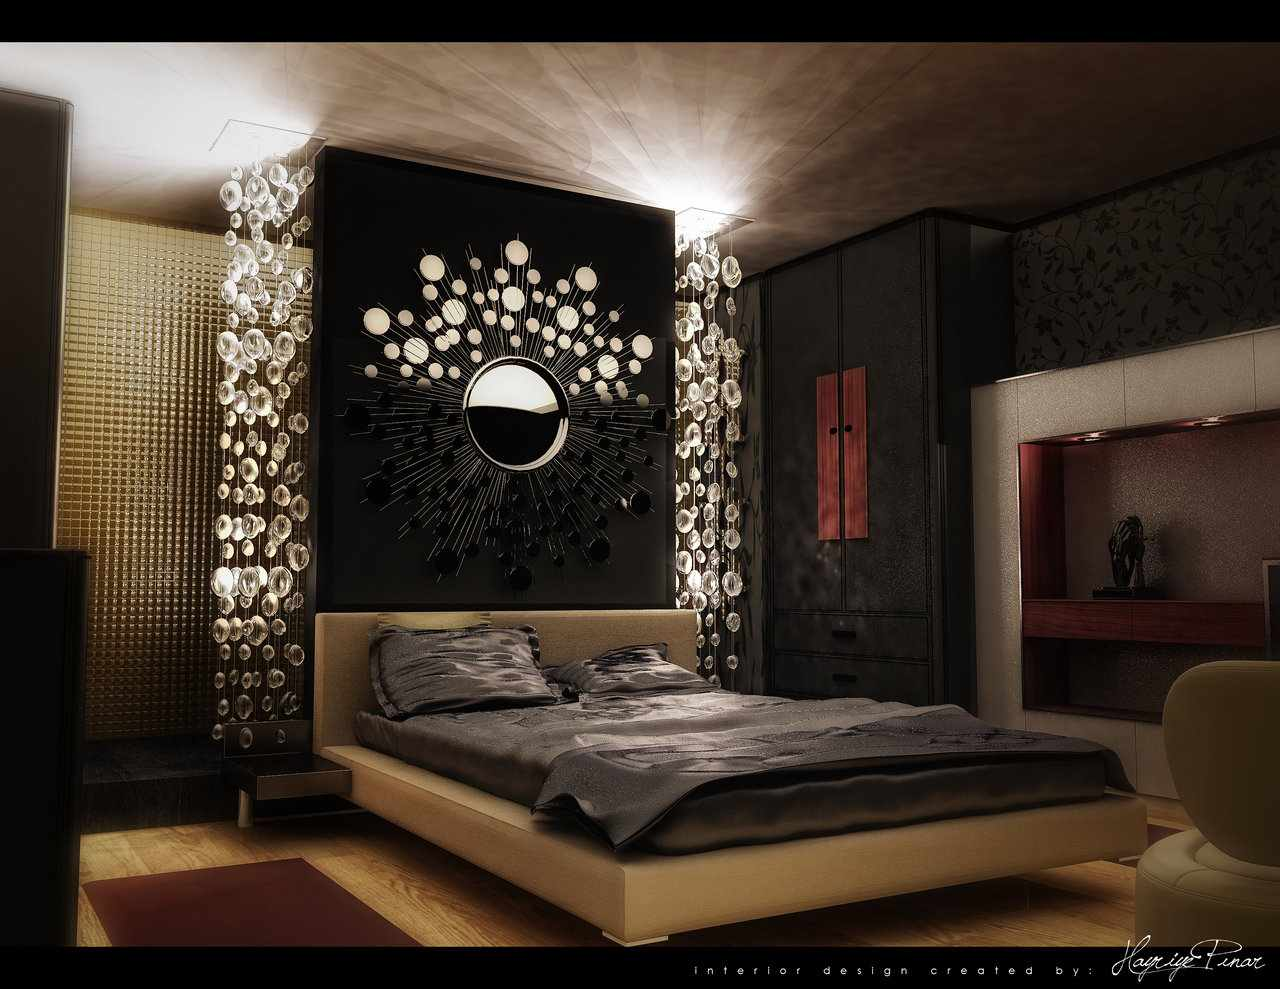 Ikea bedroom ideas ikea bedroom 2014 ideas room design for Bedroom remodel inspiration